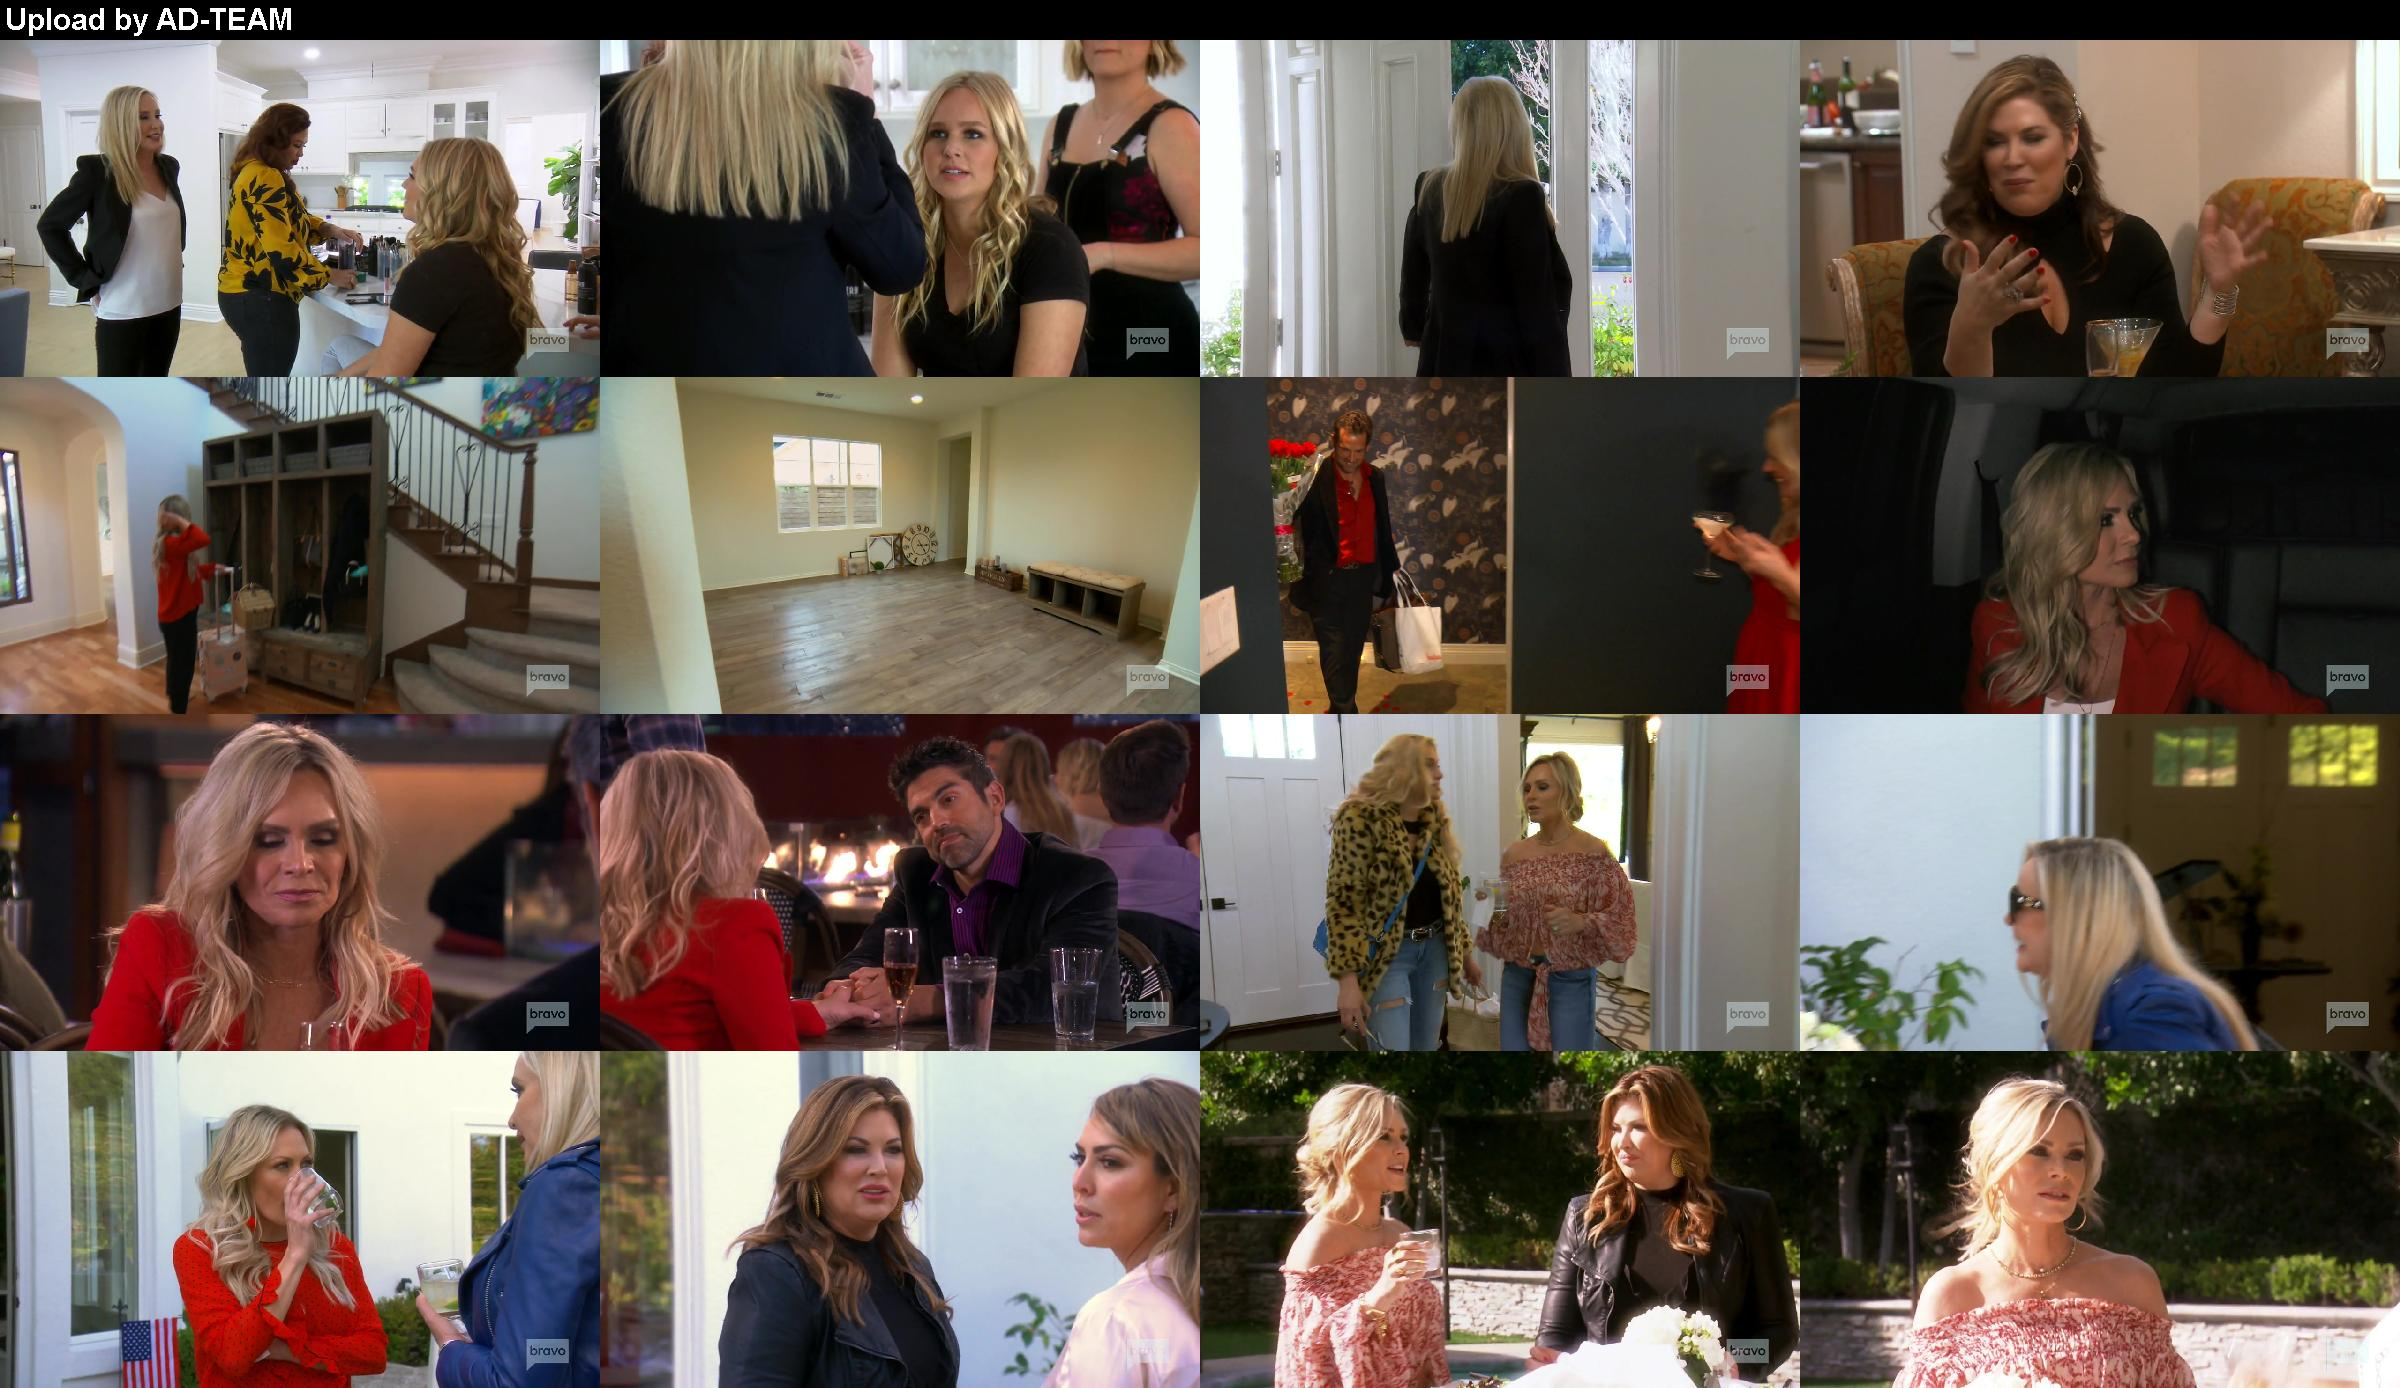 118580829_the-real-housewives-of-orange-county-s14e02-720p-web-x264-cookiemonster.jpg